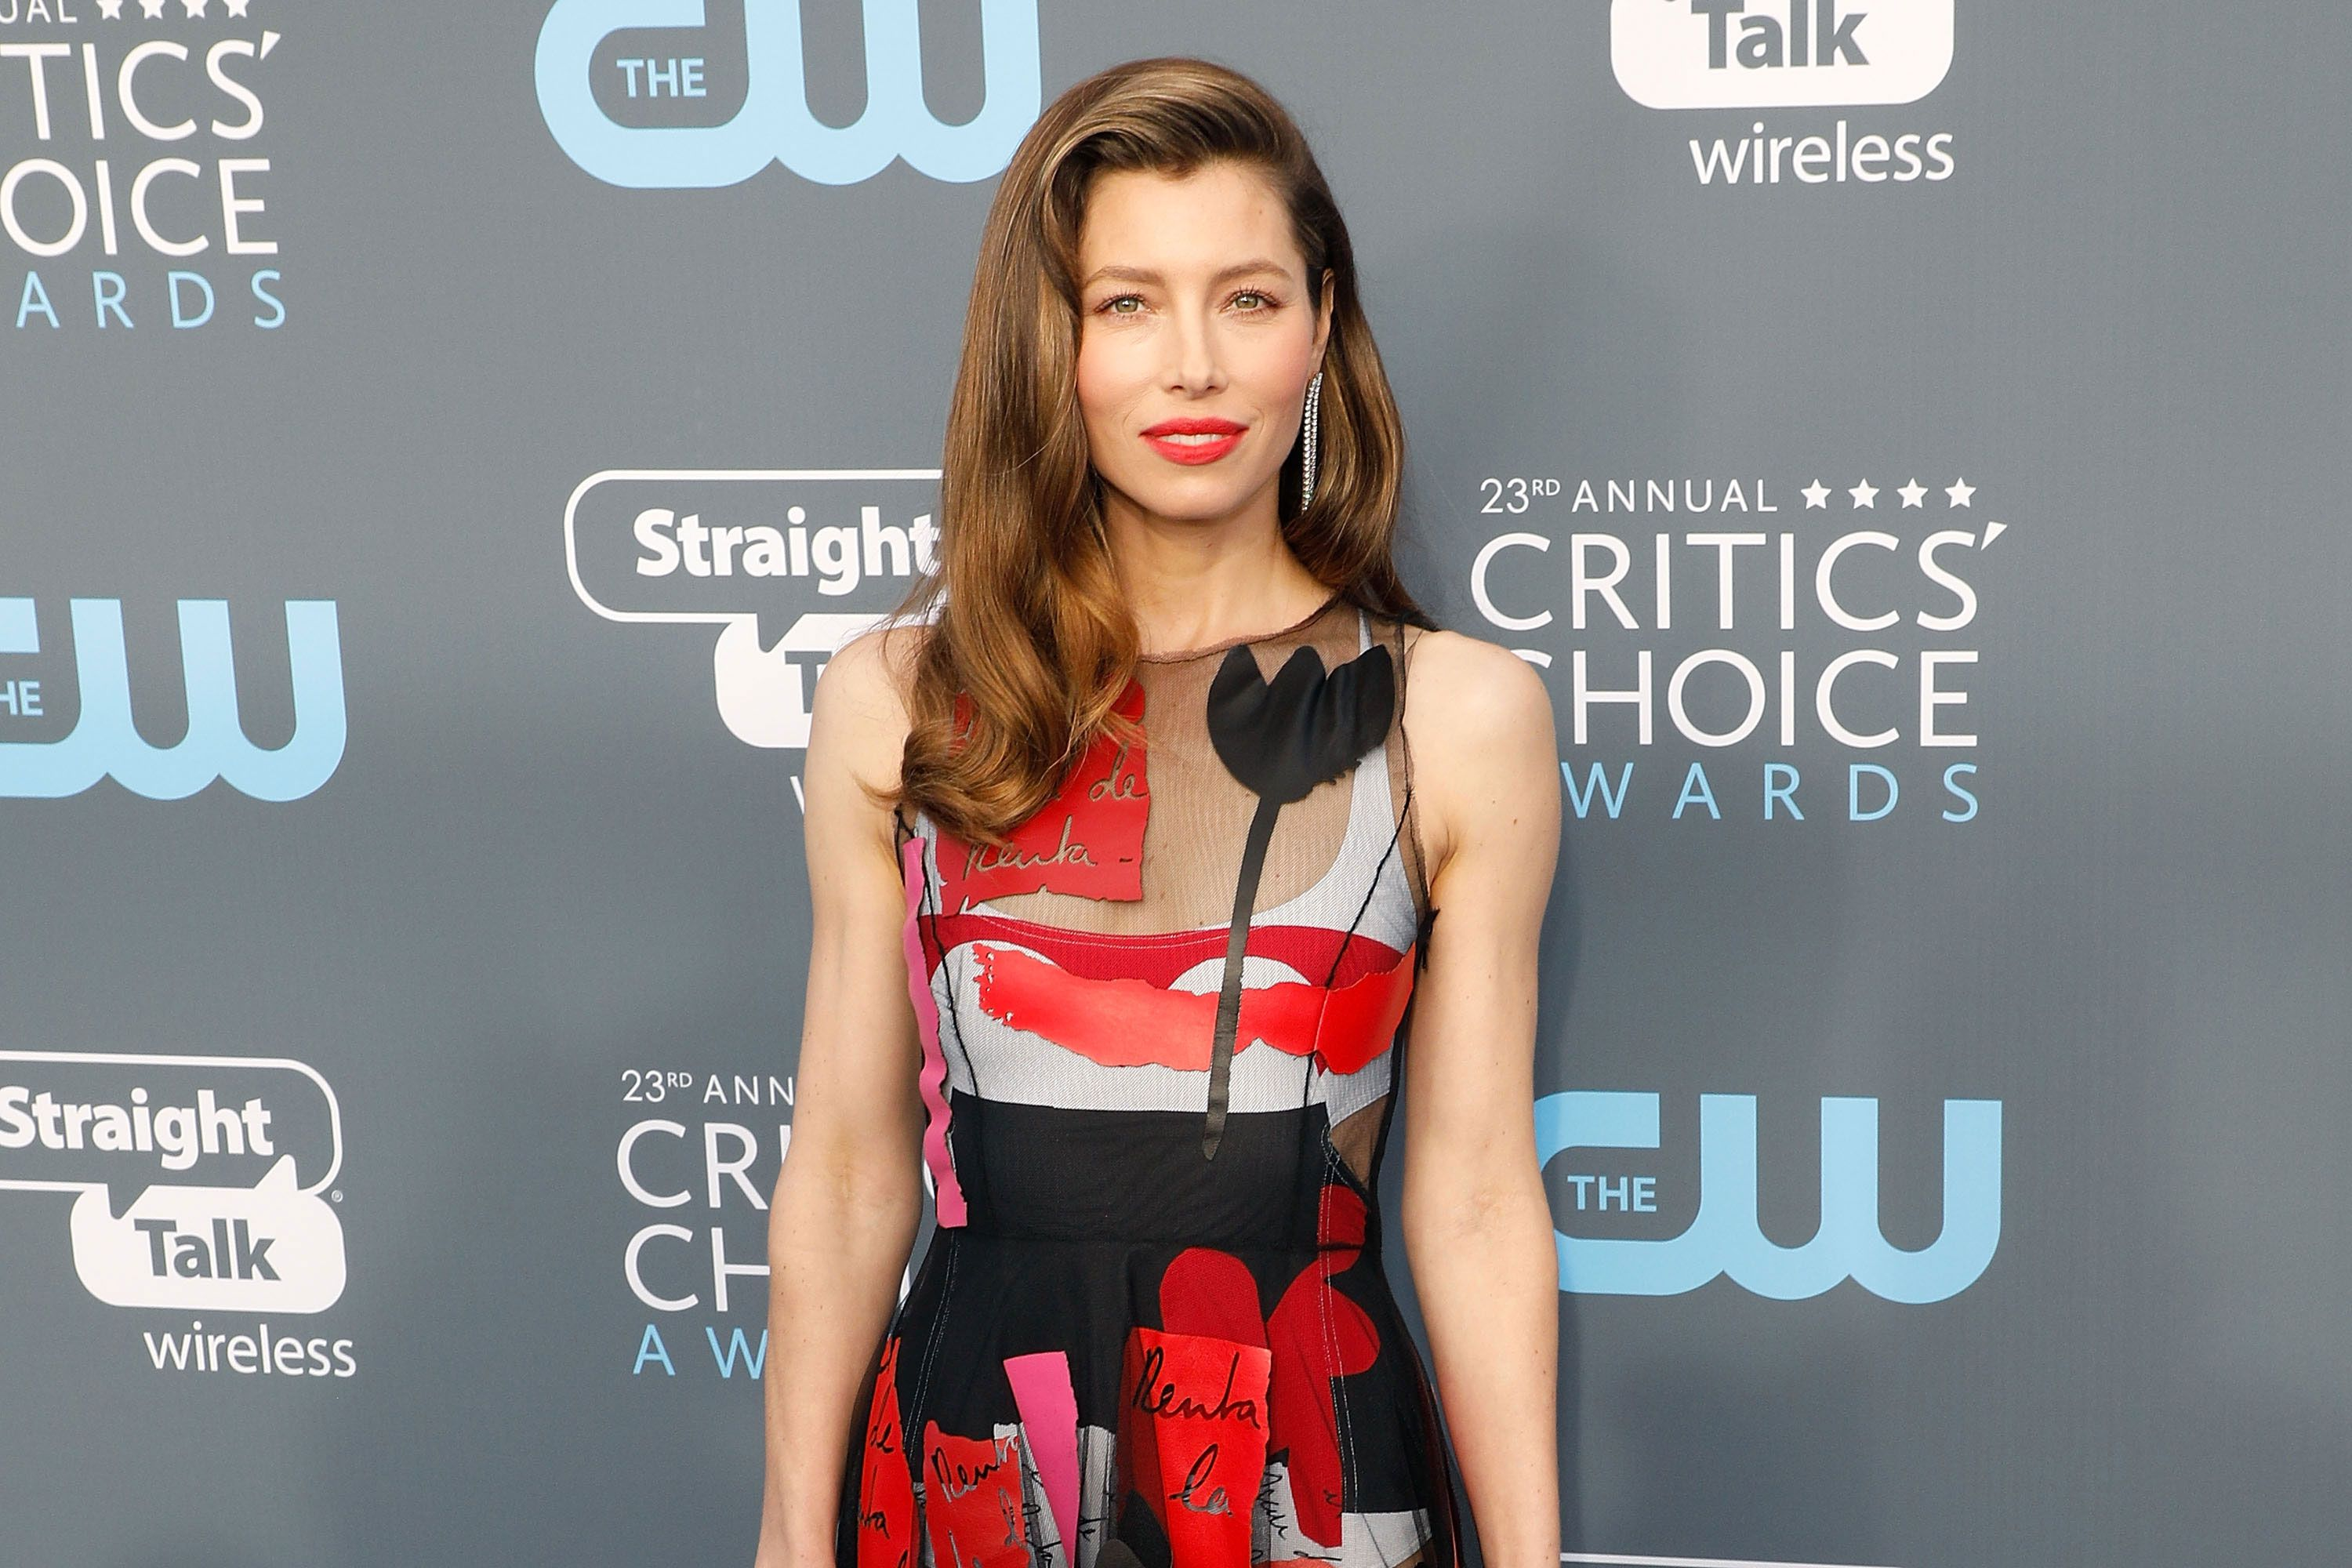 Jessica Biel tells really funny vagina (or is it vulva?) jokes